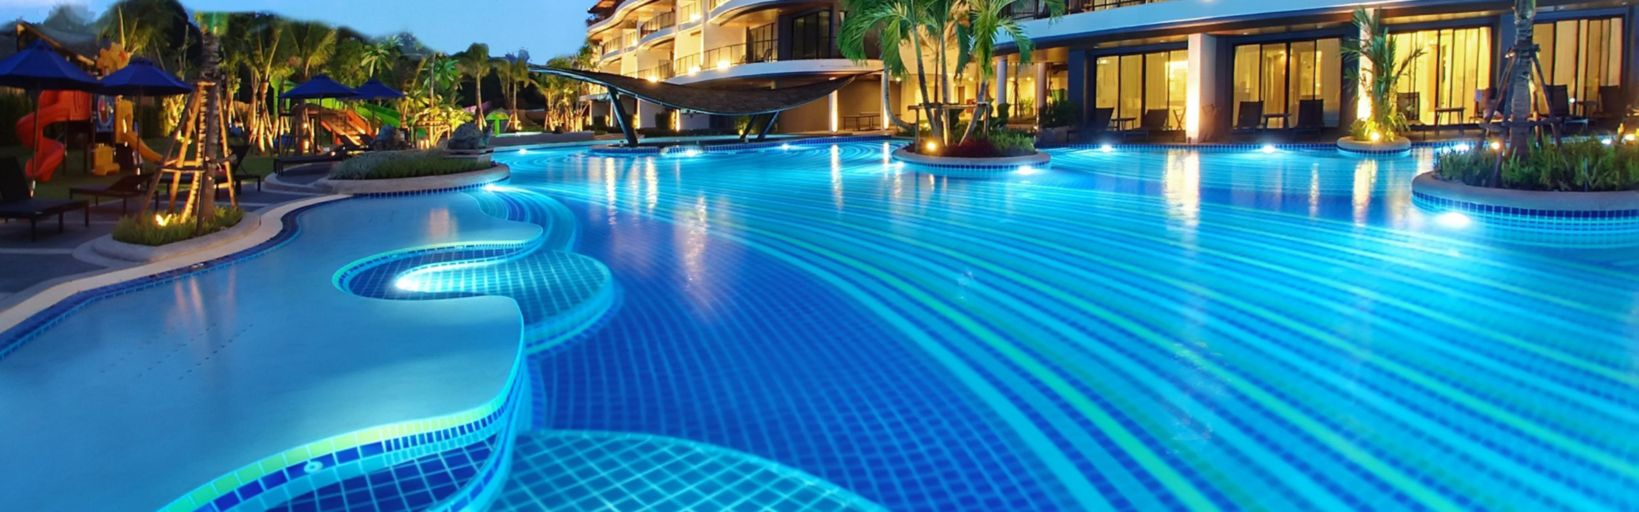 holiday-inn-resort-krabi-5289093644-16×5